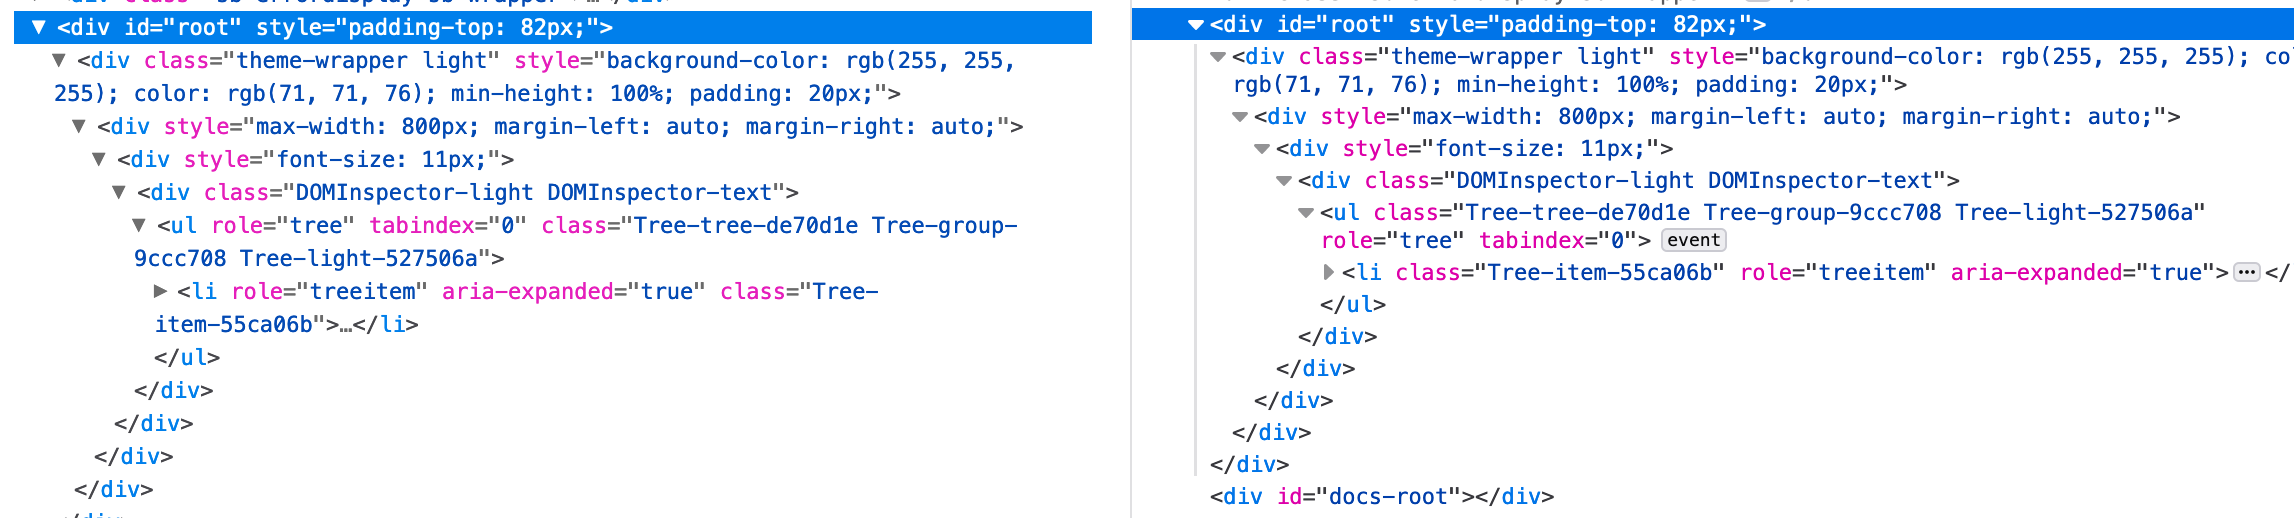 A comparison between the devtools-ds DOM inspector and Firefox DOM inspector showing the near-identical appearance.